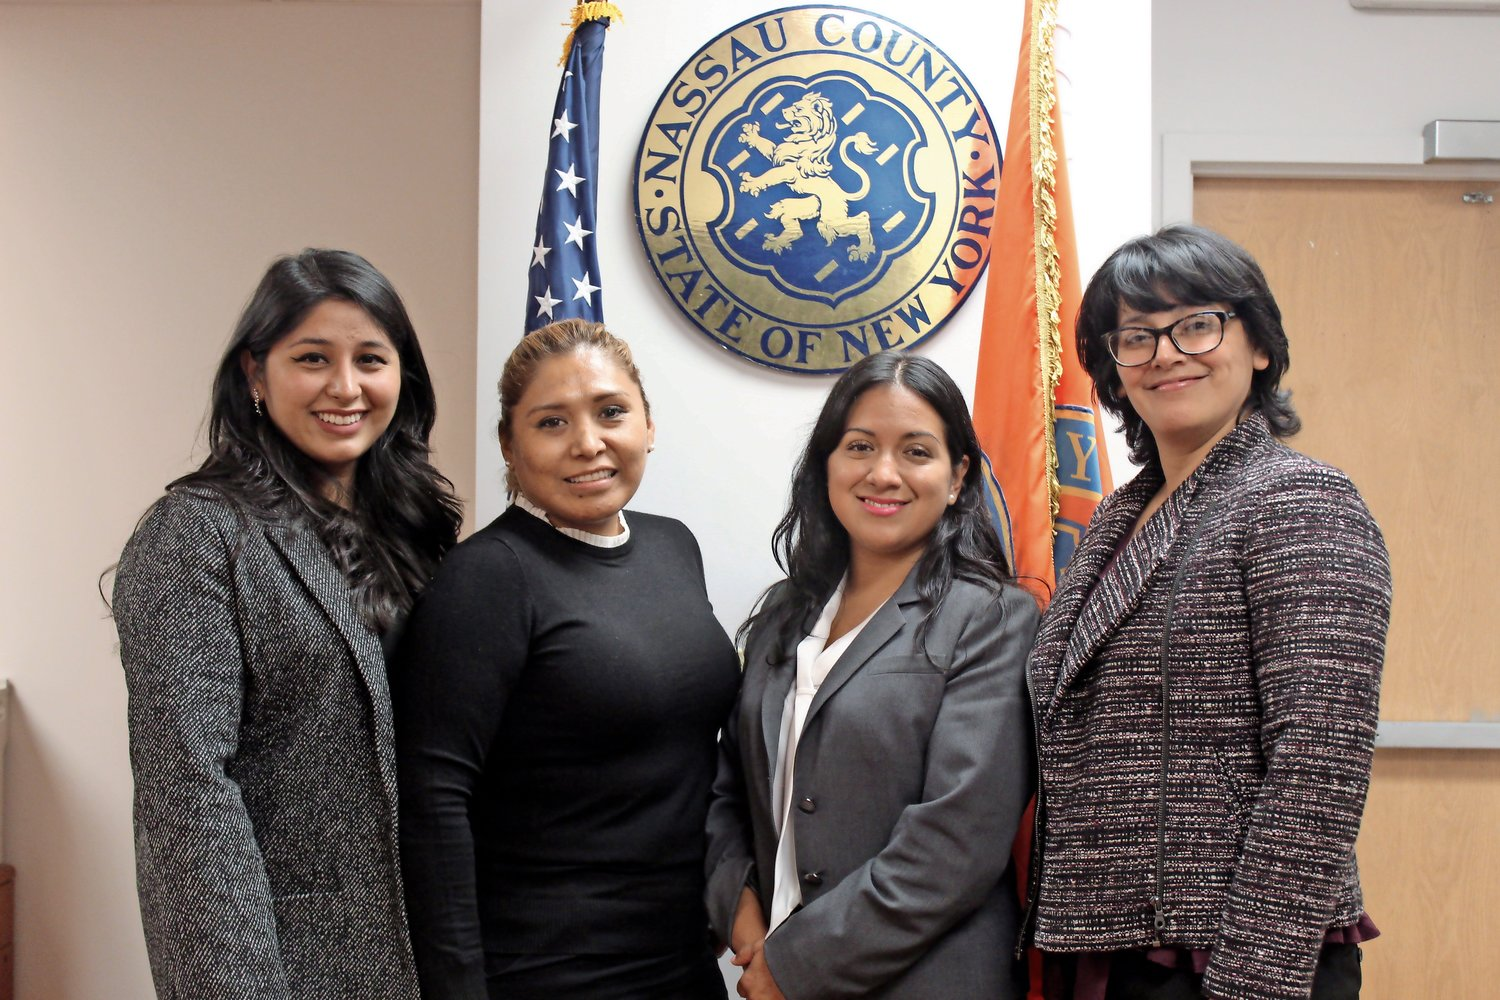 Running the Office of Hispanic Affairs is administrative aide Estefany Ruiz, left, program coordinator Yolanda Martinez, Flores and deputy director Lucia Martinez.